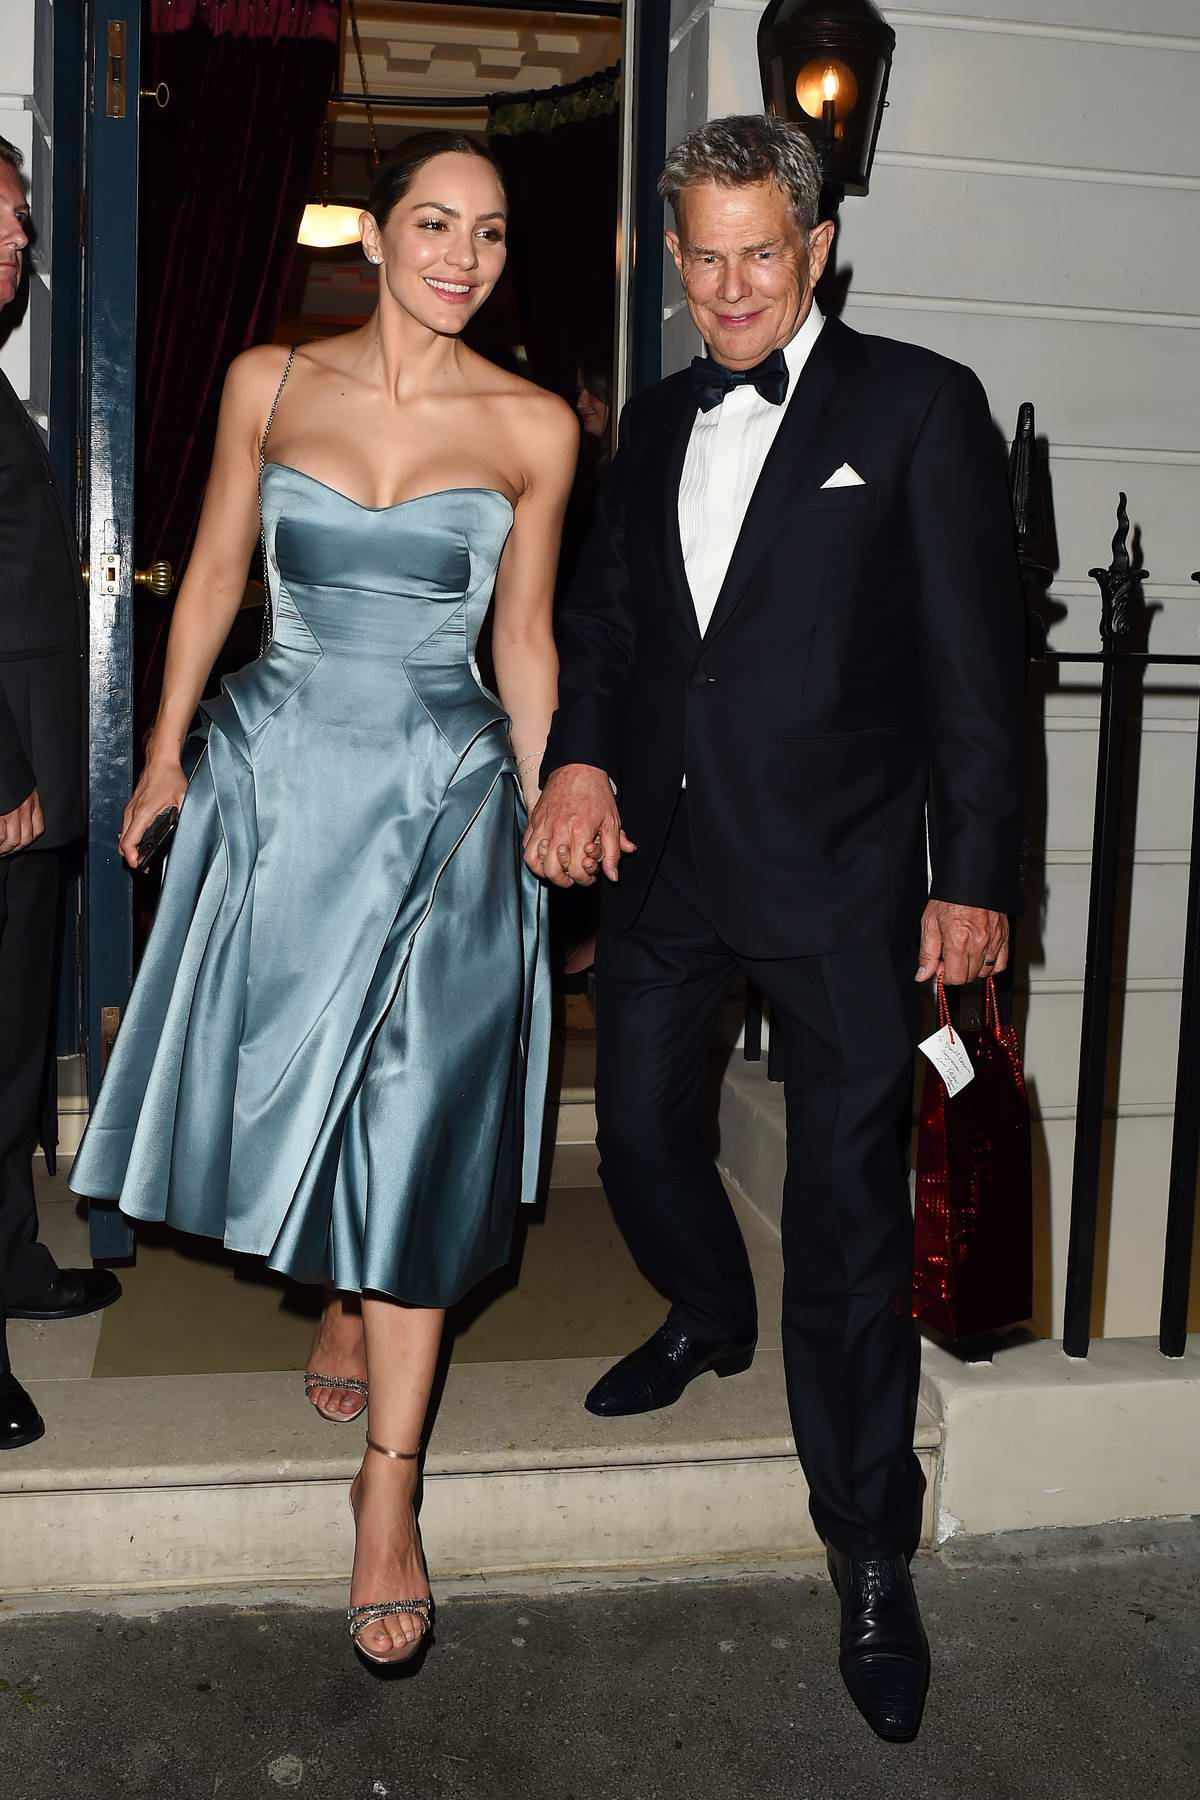 Katharine McPhee and David Foster seen leaving their wedding reception at 25 Albermarle St. Mayfair in London, UK